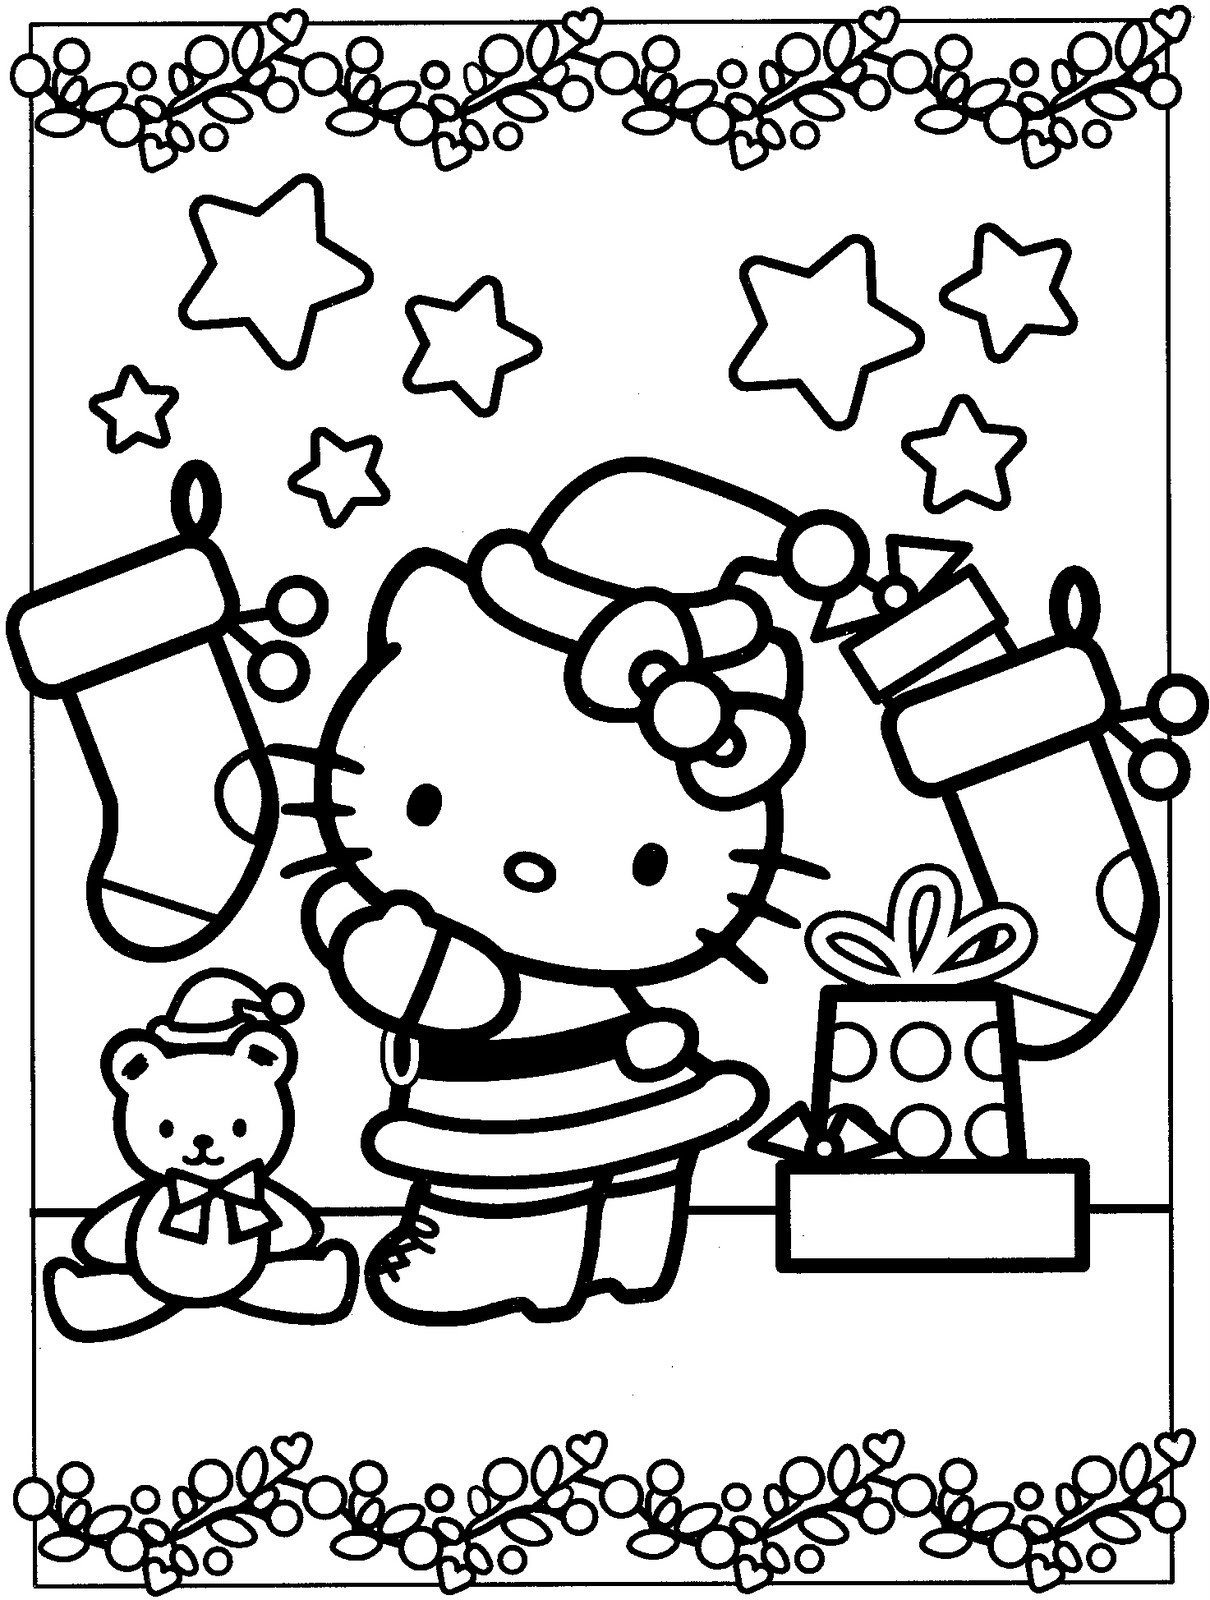 hello kitty holiday coloring pages hello kitty christmas coloring pages cute 101 worksheets kitty holiday hello pages coloring